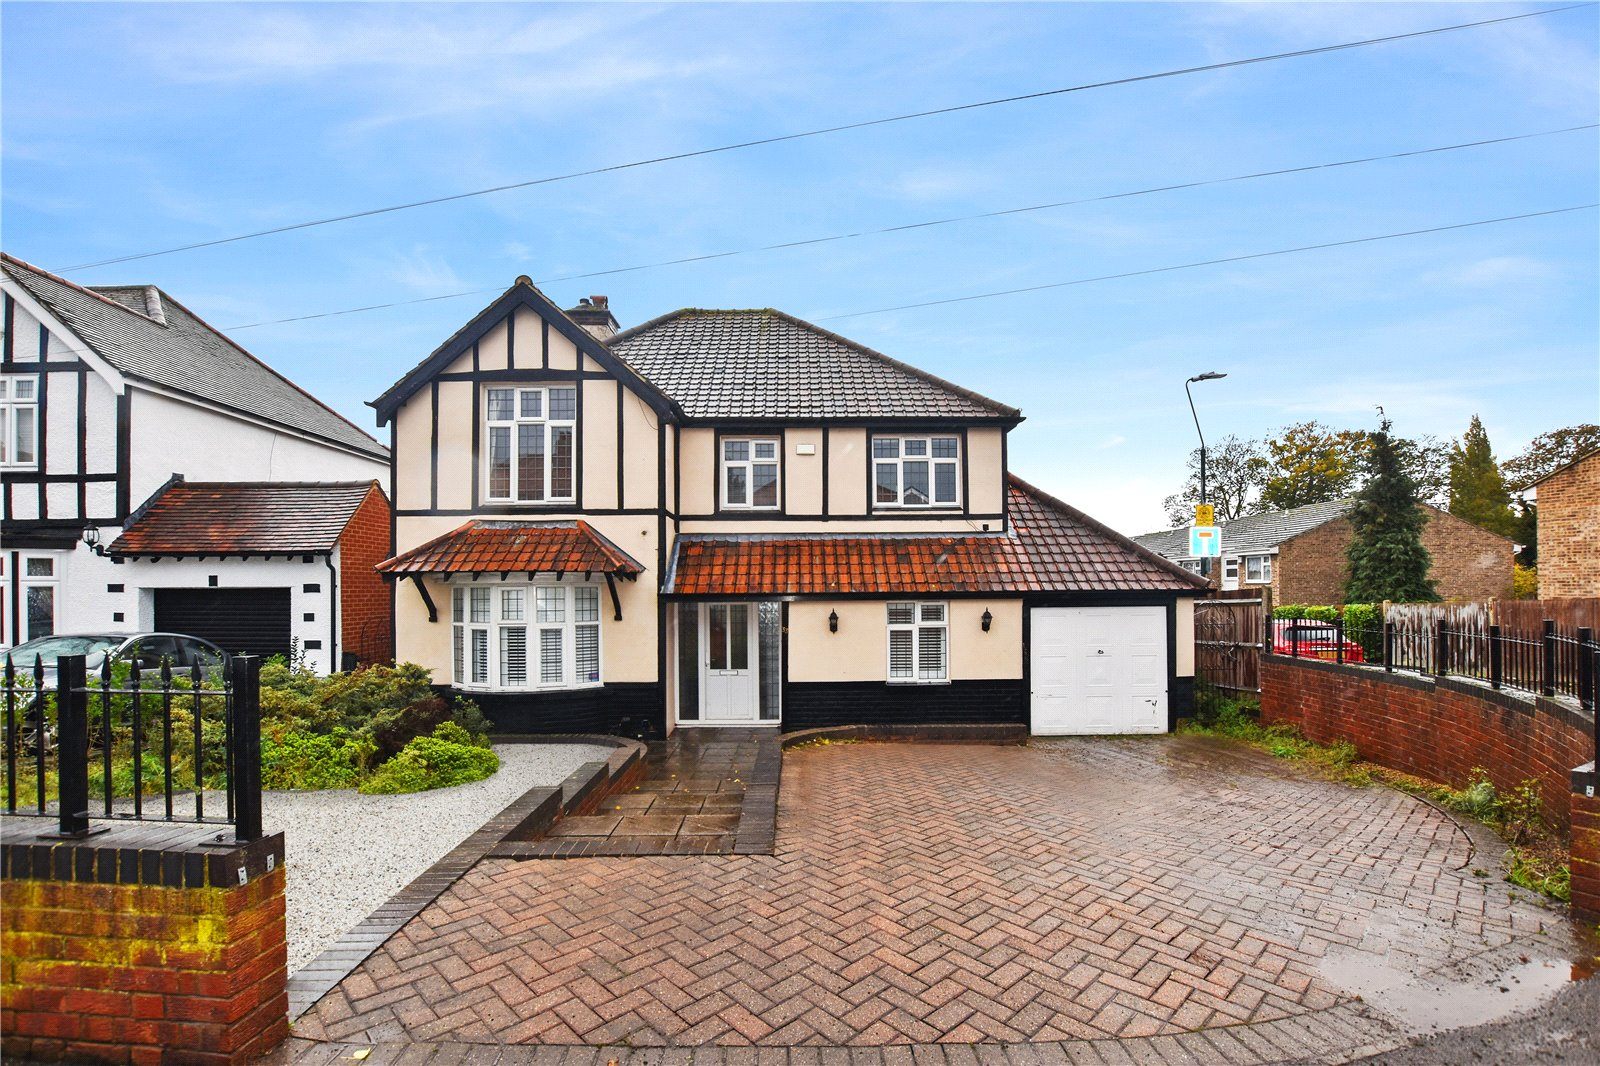 Mount Road, Bexleyheath, DA6